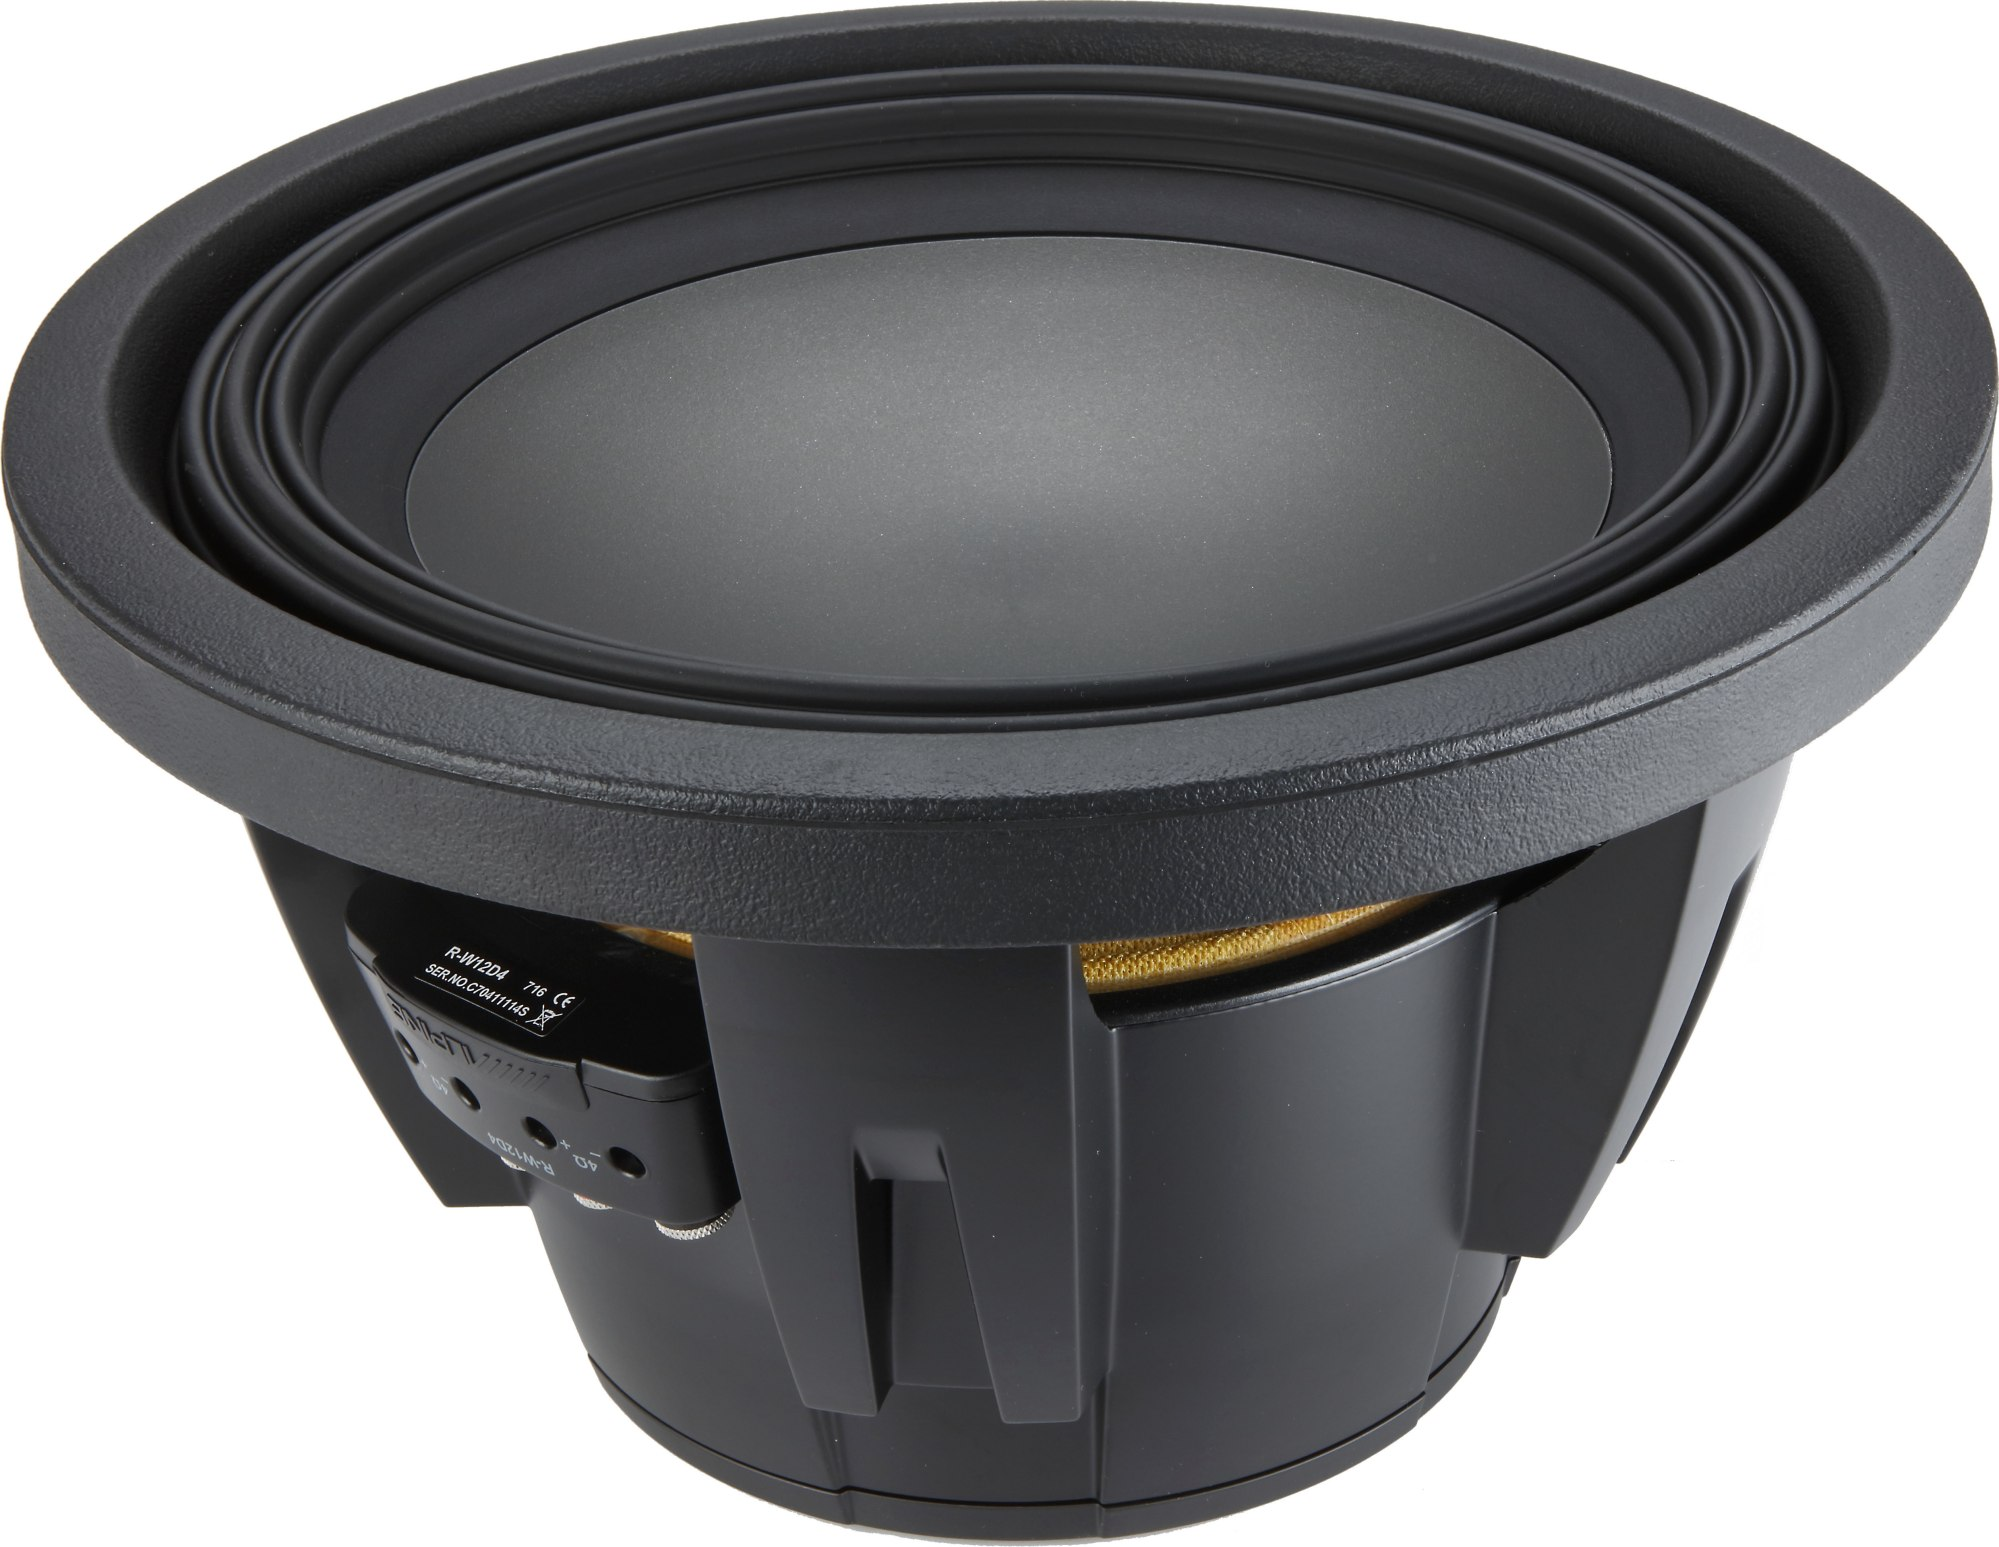 hight resolution of alpine r w12d4 r series 12 subwoofer with dual 4 ohm voice coils at crutchfield